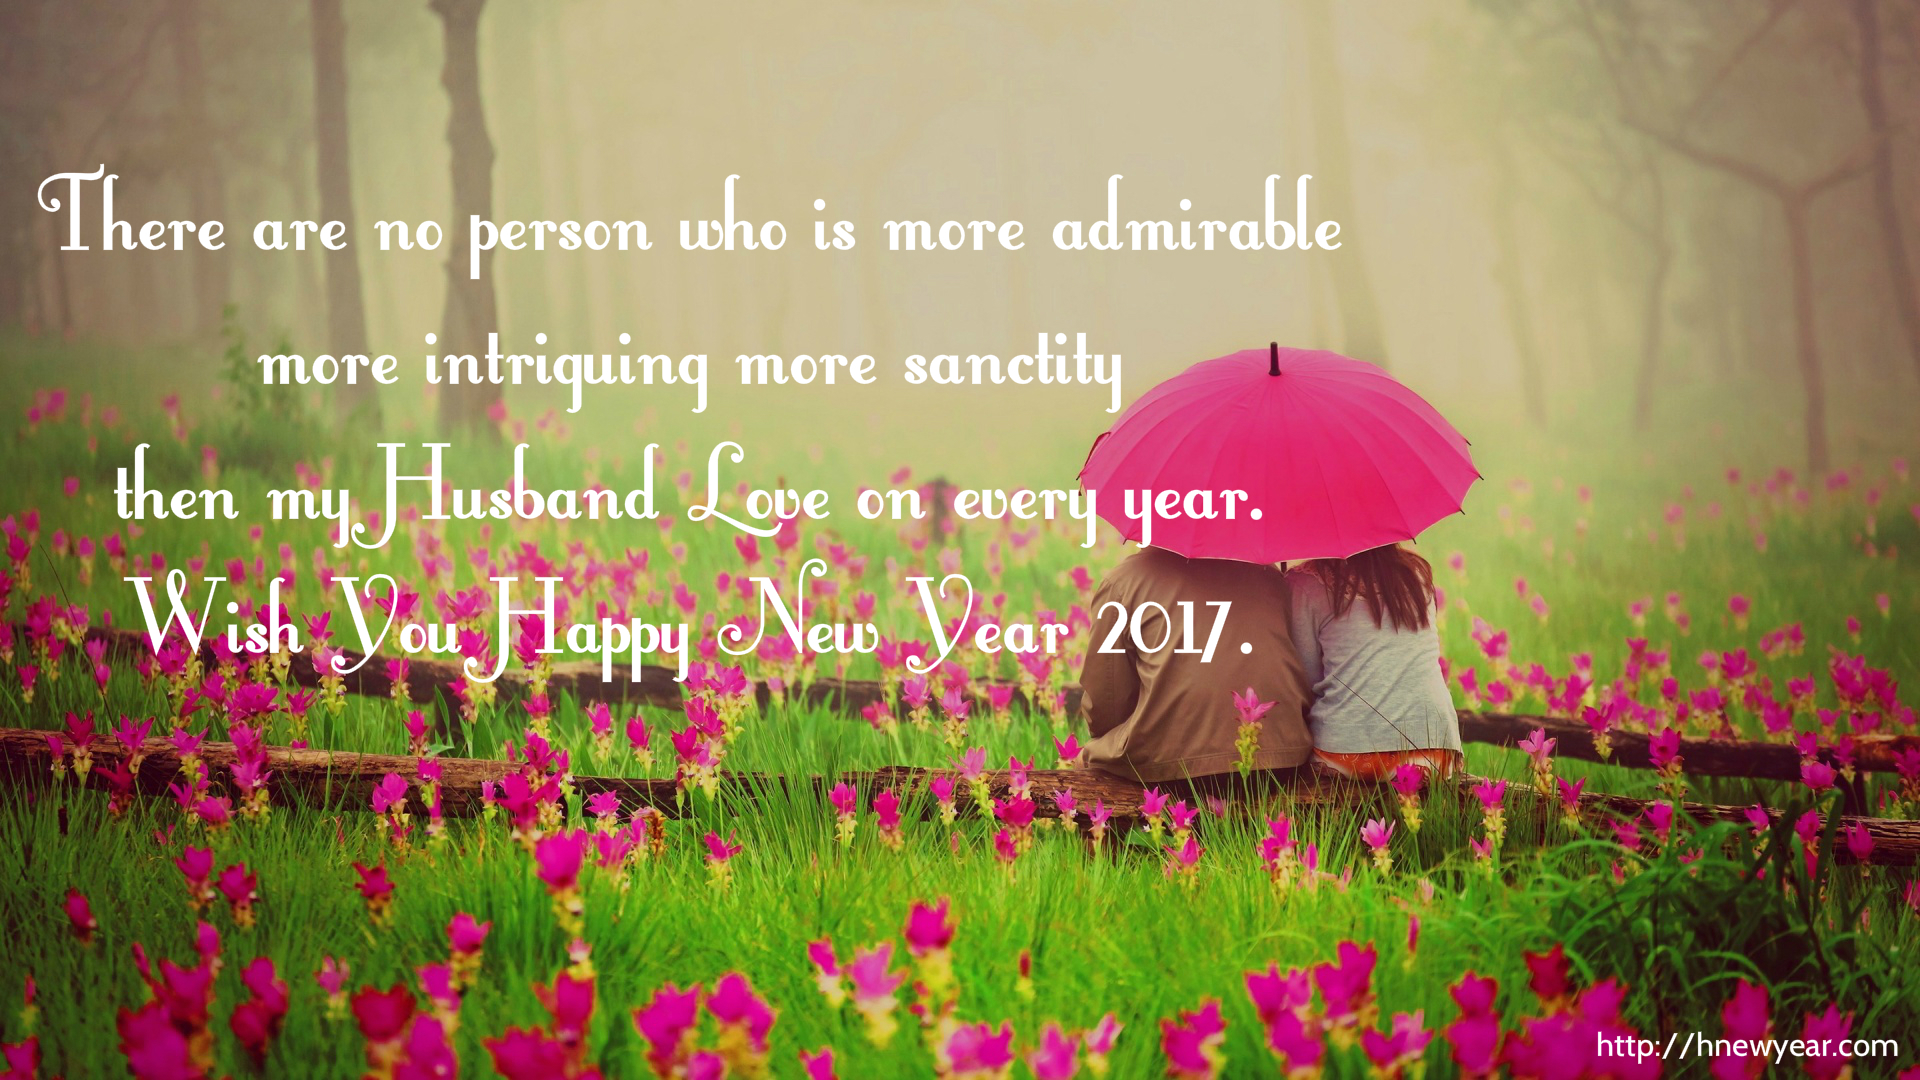 there are no person who is more admirable more intriguing more sanctity then my husband love on every year wish you happy new year 2019